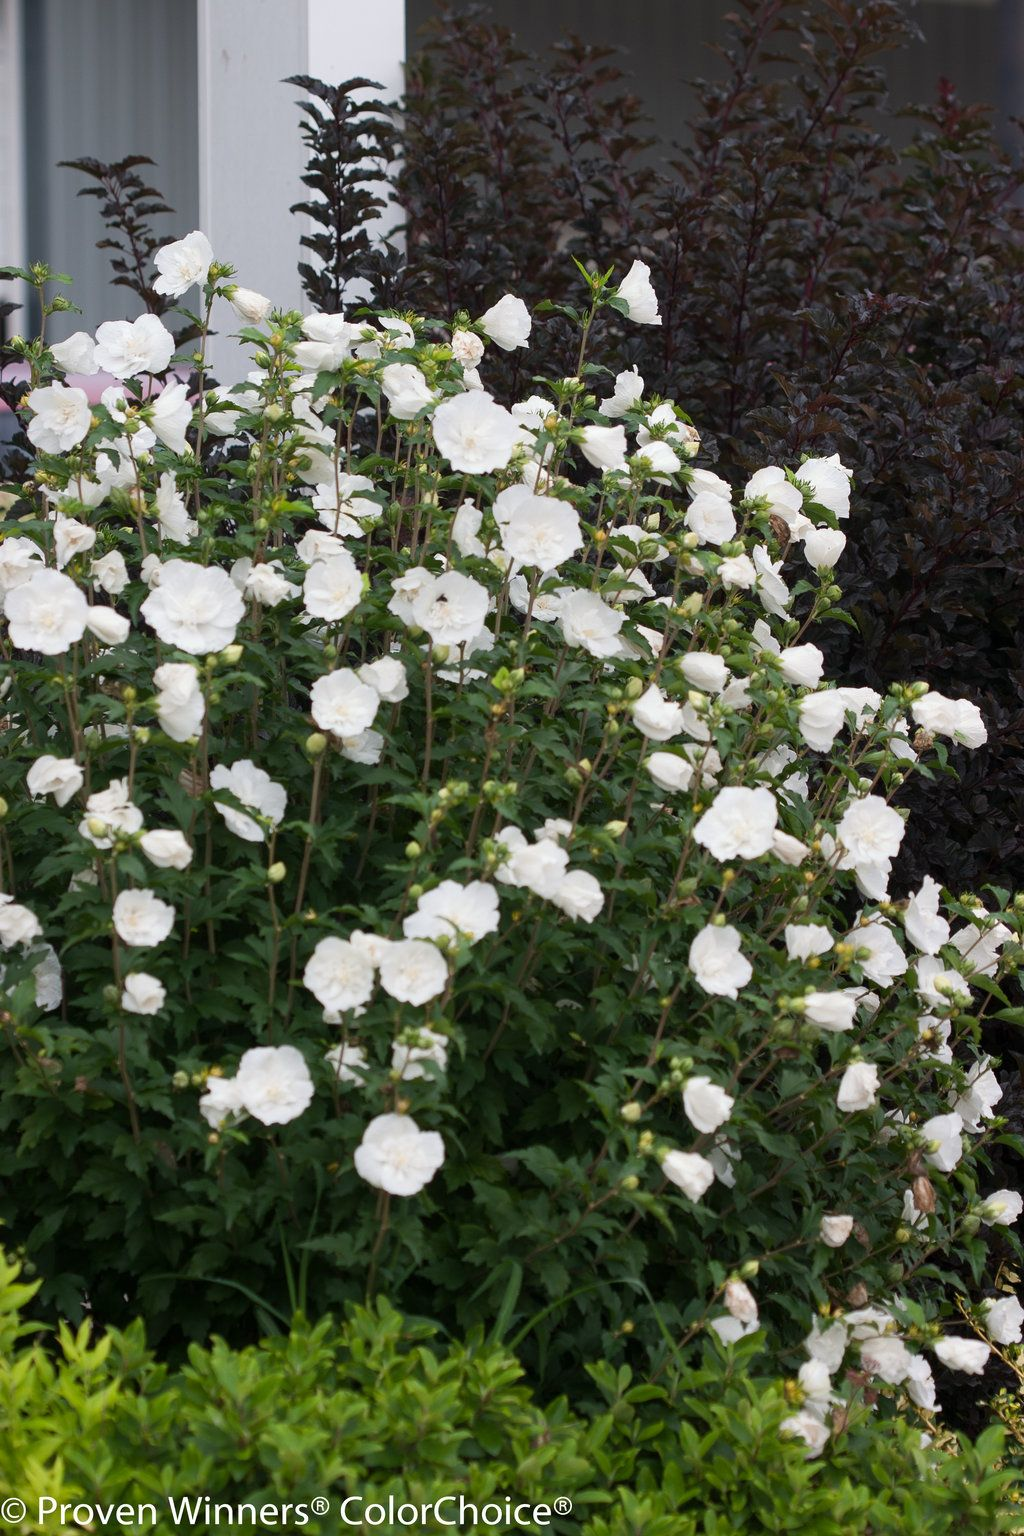 White Chiffon® - Rose of Sharon - Hibiscus syriacus | Garden ...